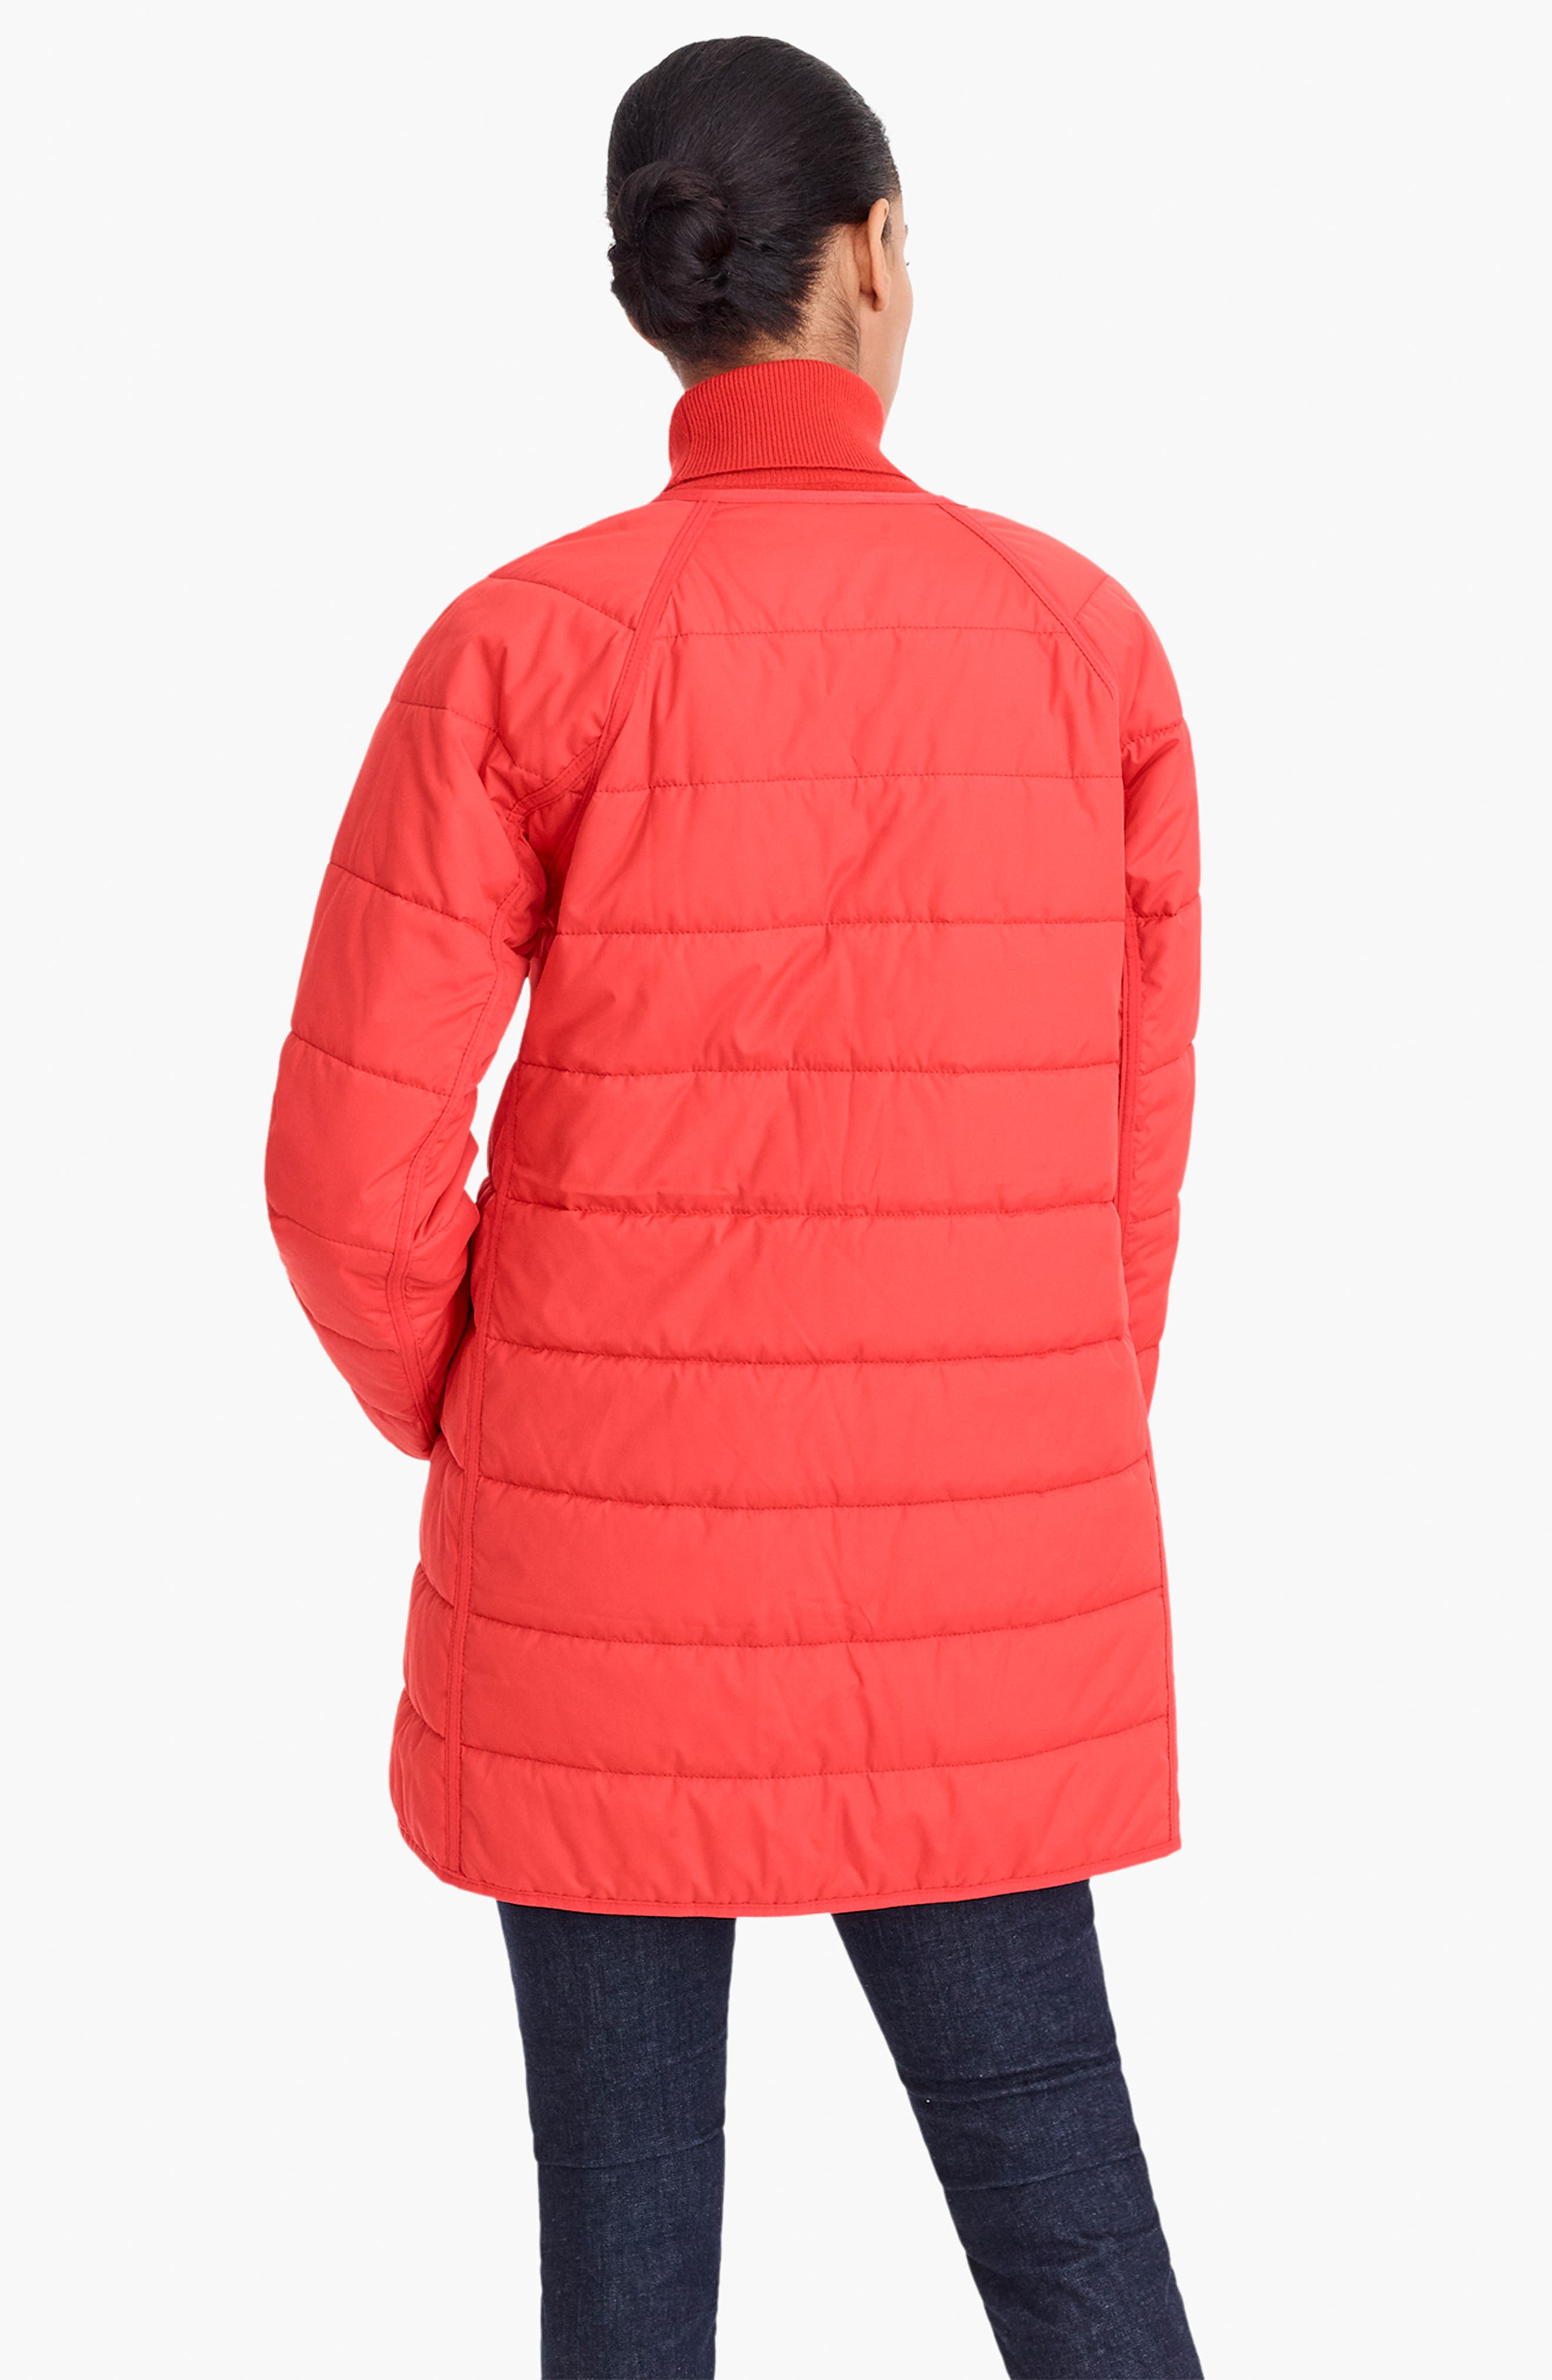 Reversible Puffer Jacket,                             Alternate thumbnail 5, color,                             400